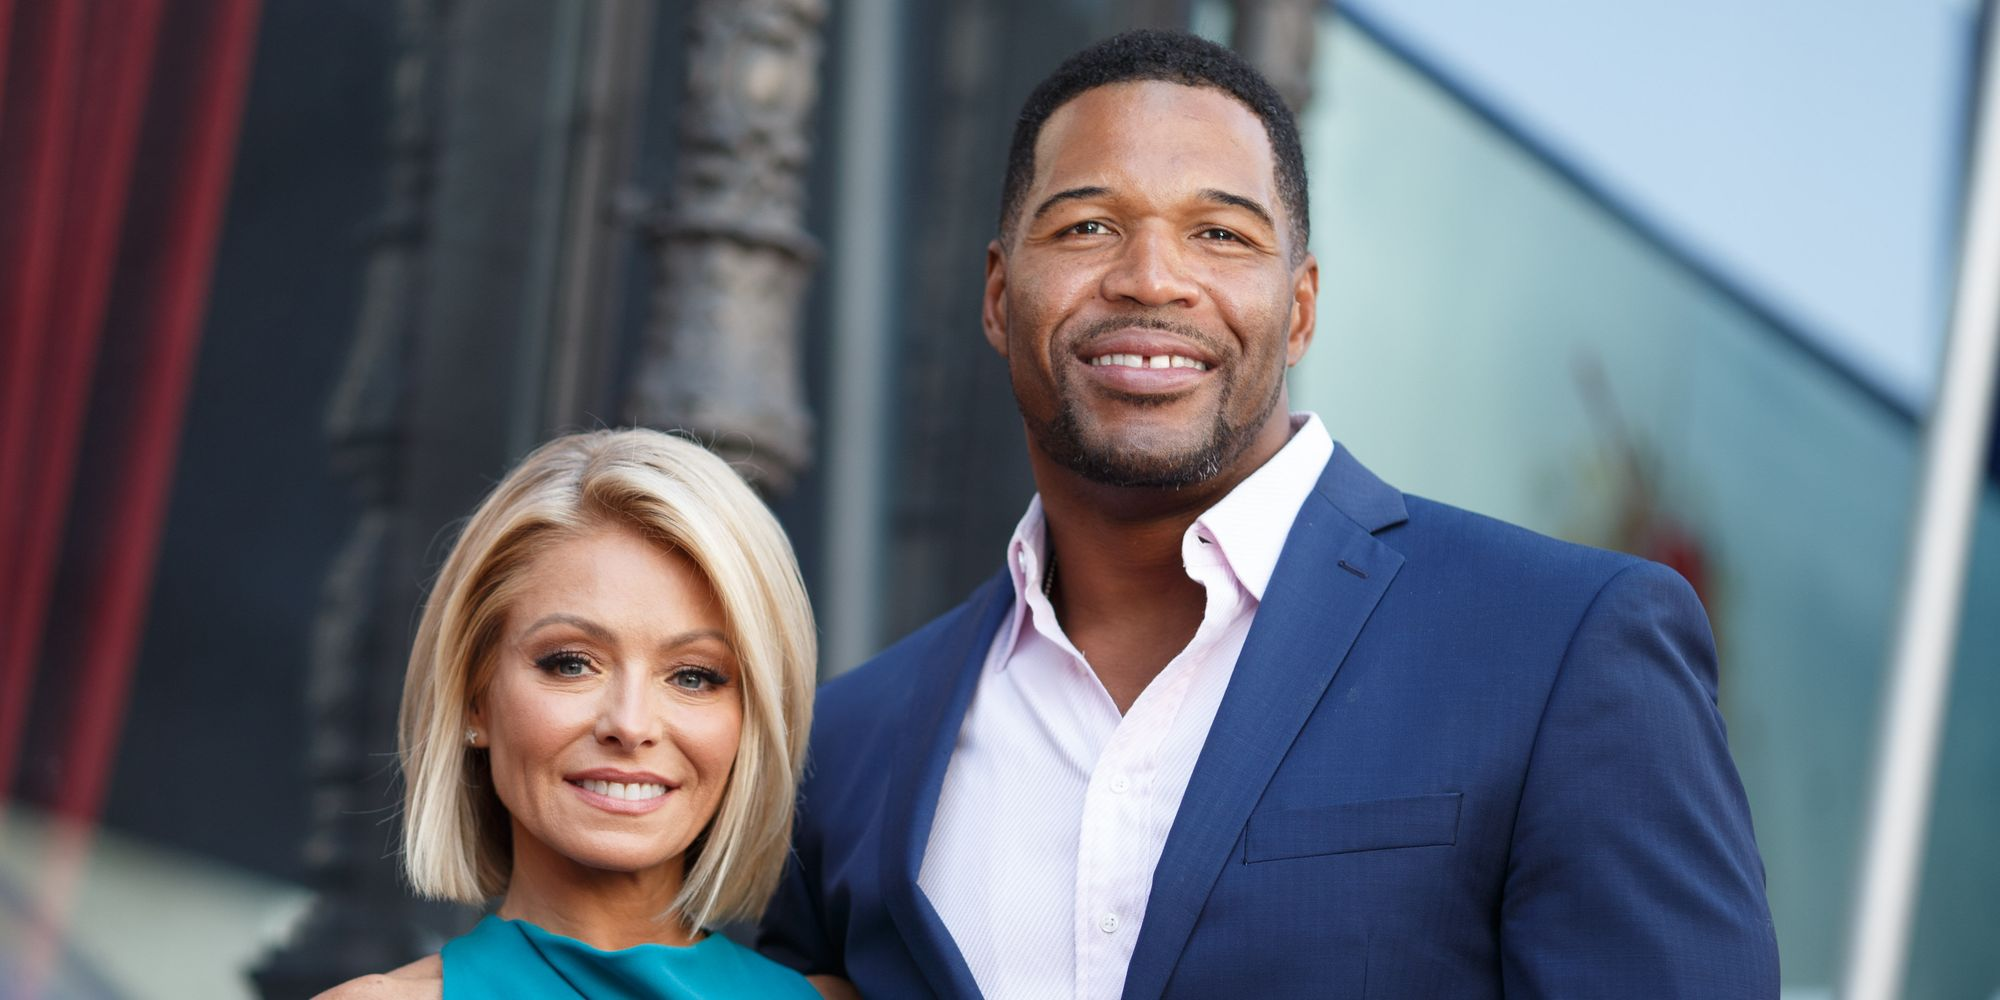 Kelly Ripa Sends Michael Strahan Off With A Bang On His Final 'Live' Episode